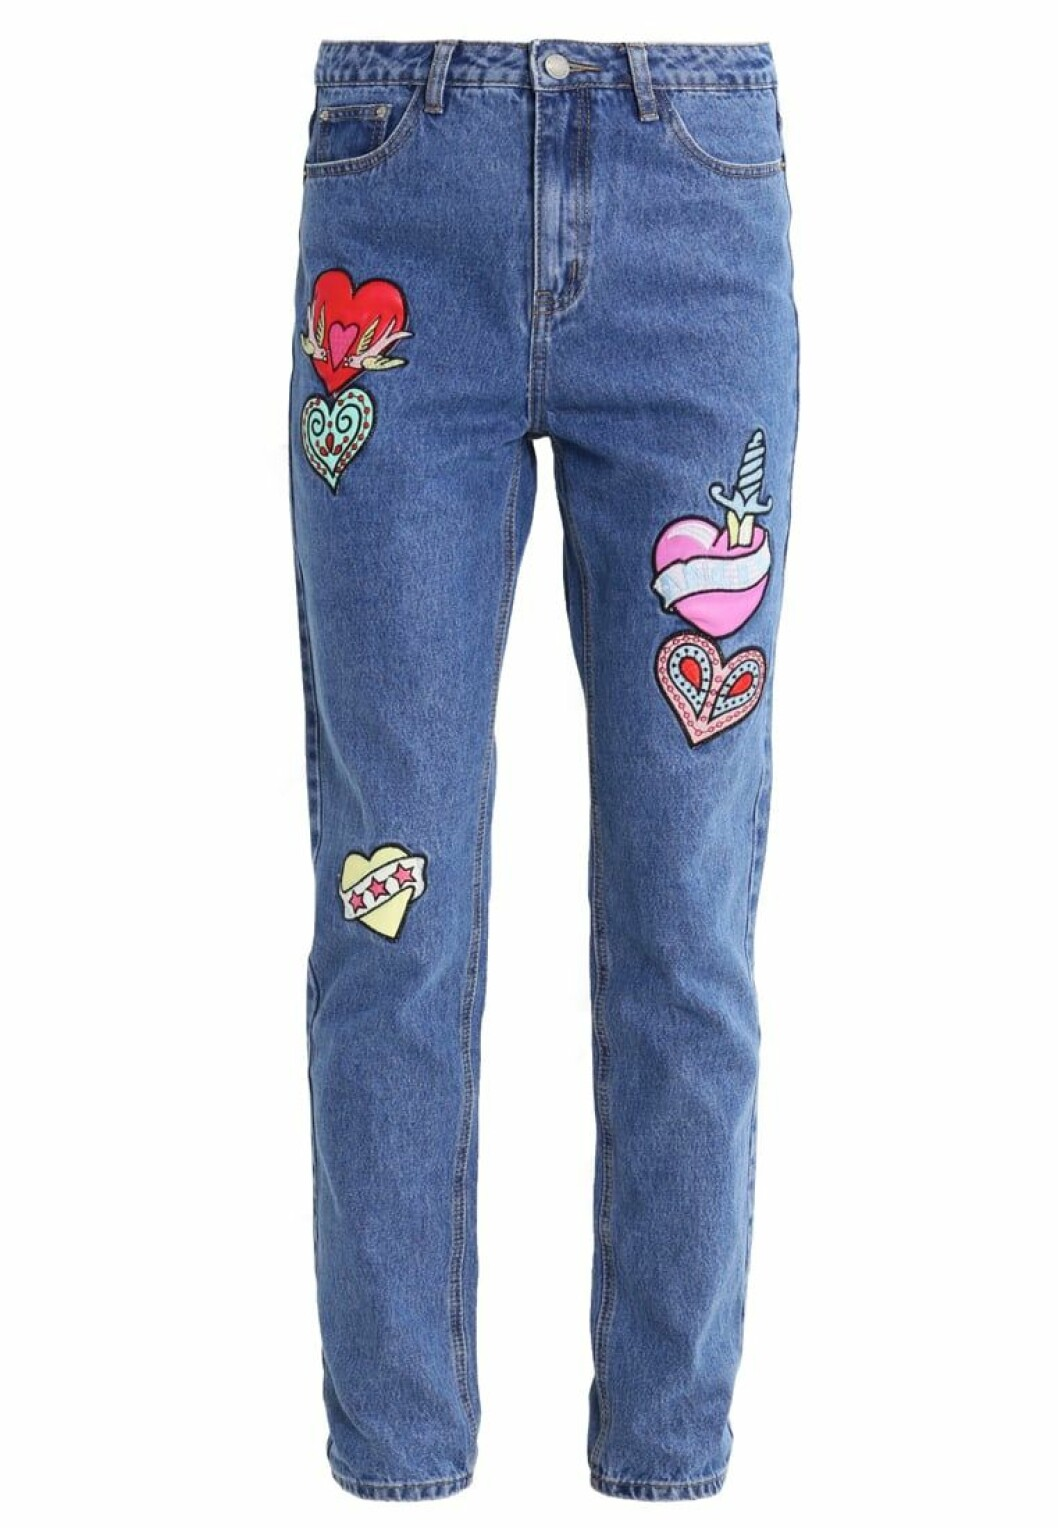 jeans patches roliga